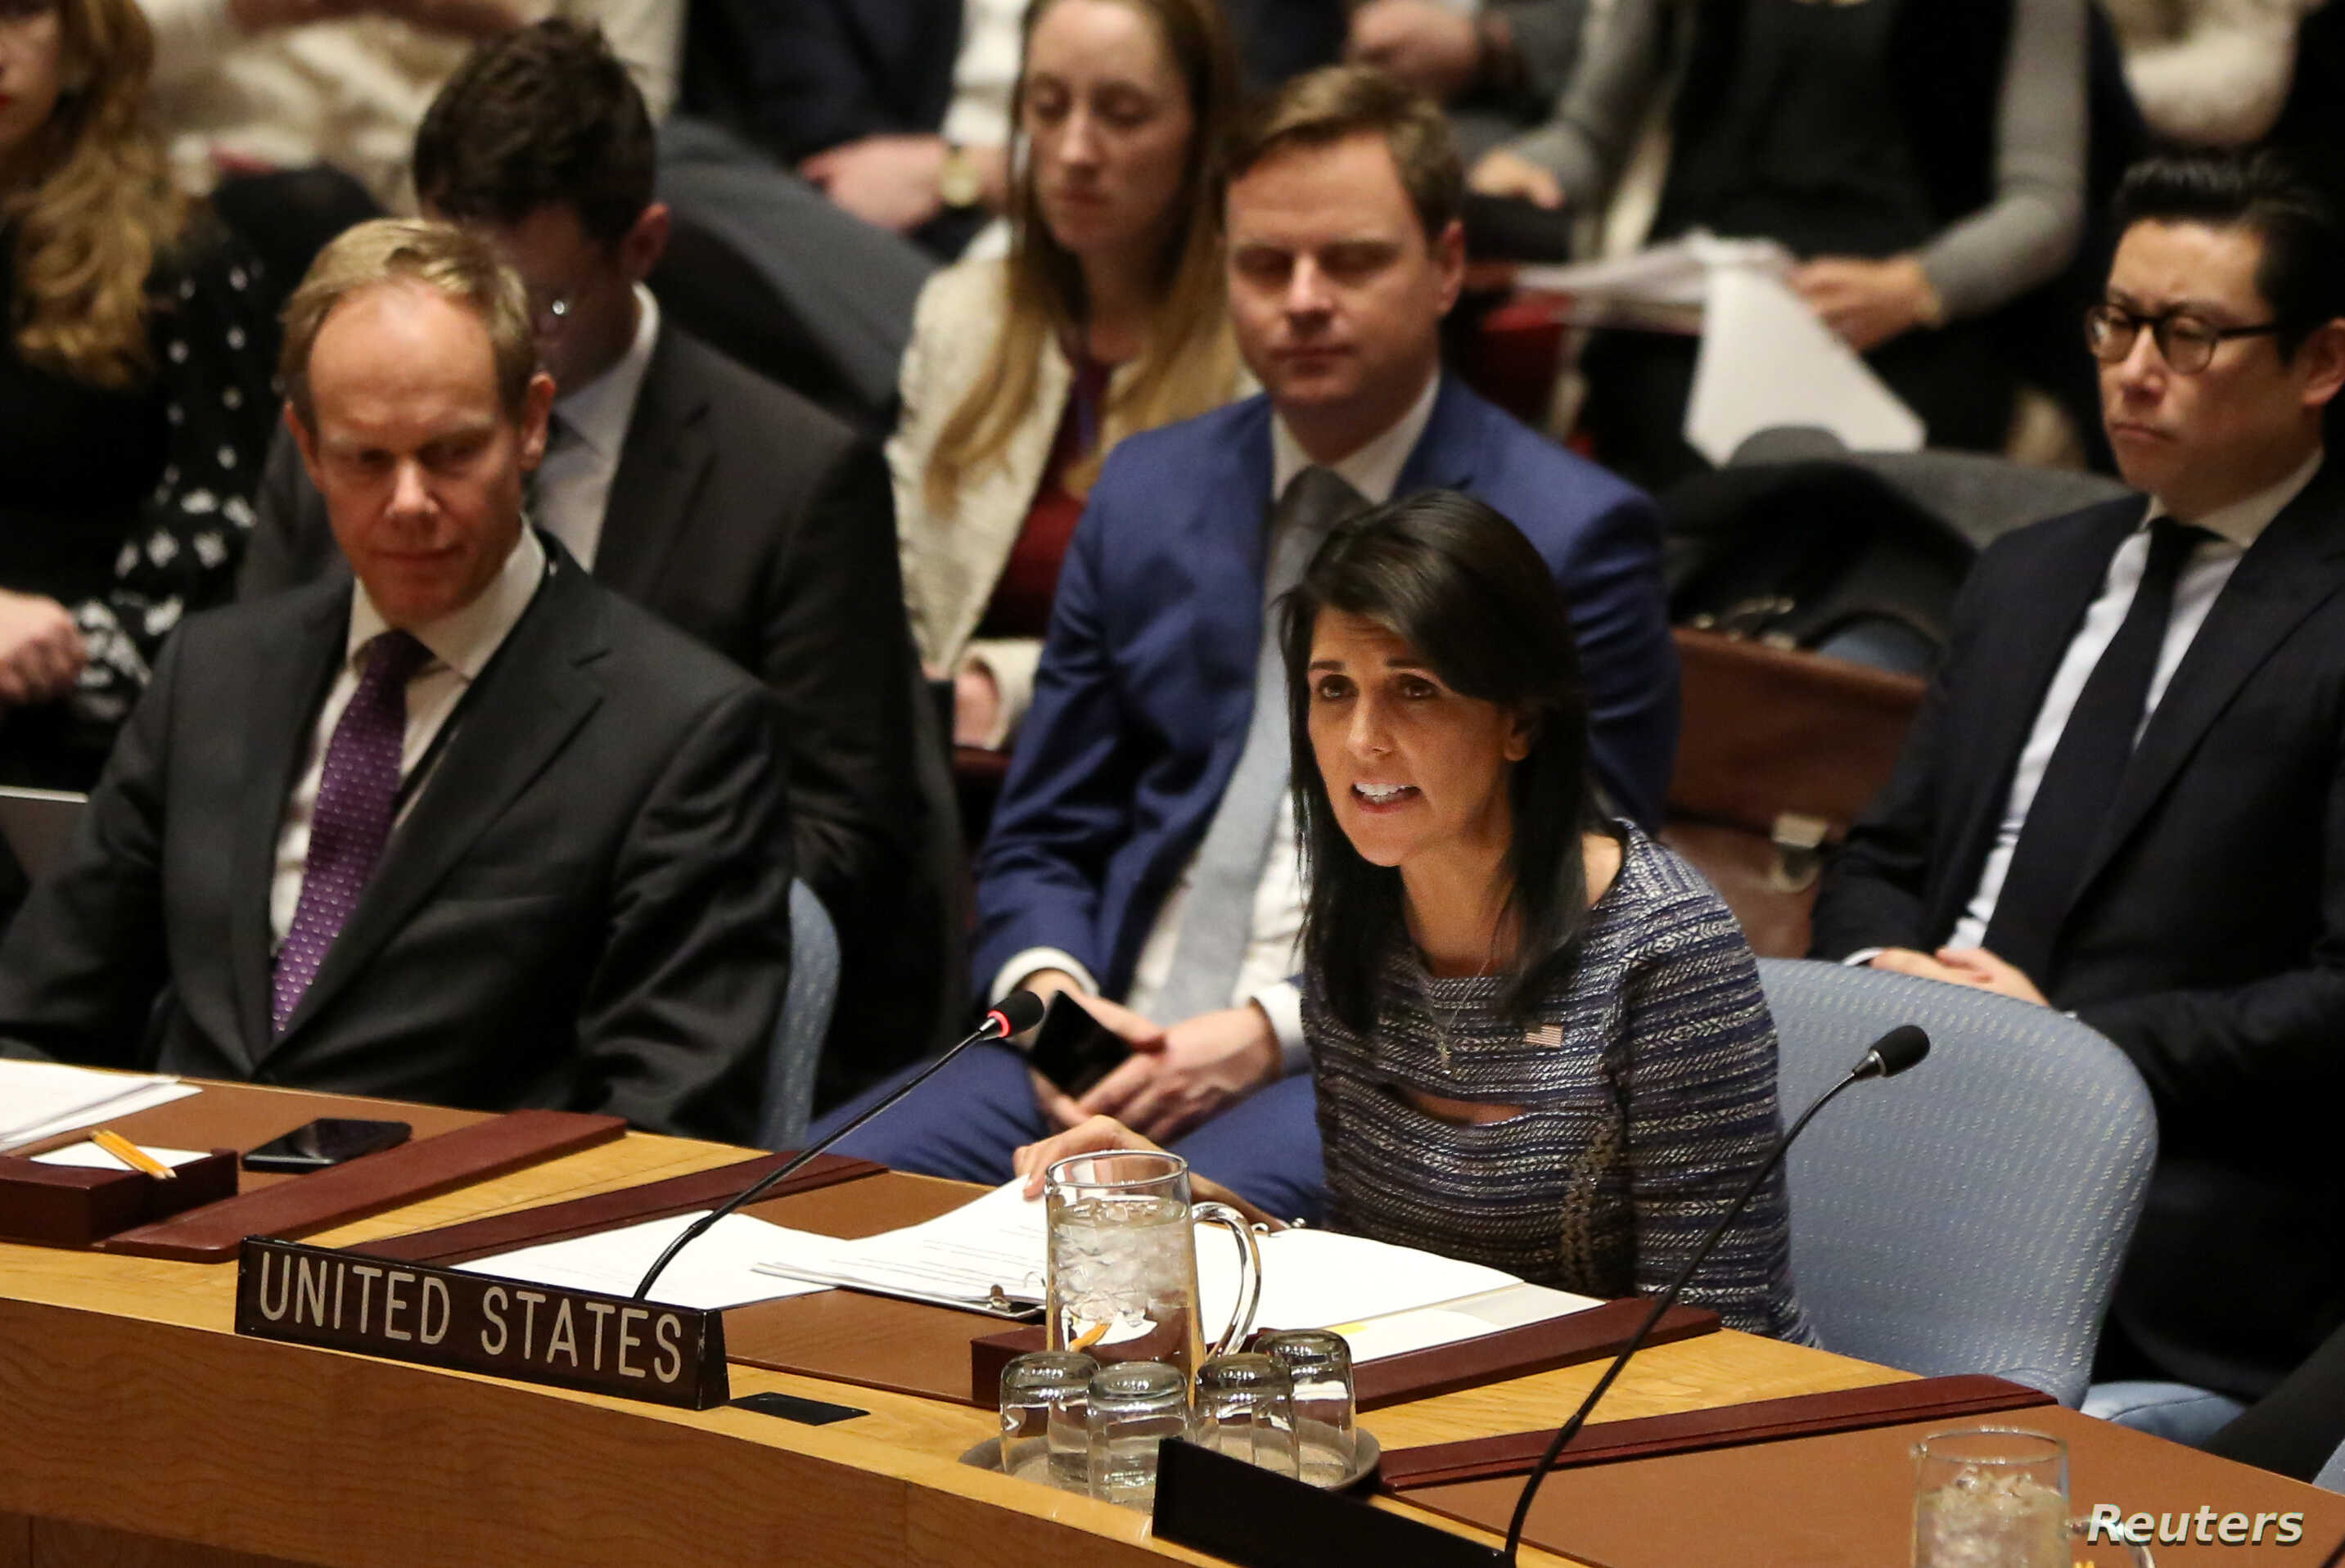 U.S. Ambassador to the United Nations Nikki Haley attends the United Nations Security Council session on imposing new sanctions on North Korea, in New York, U.S., Dec. 22, 2017